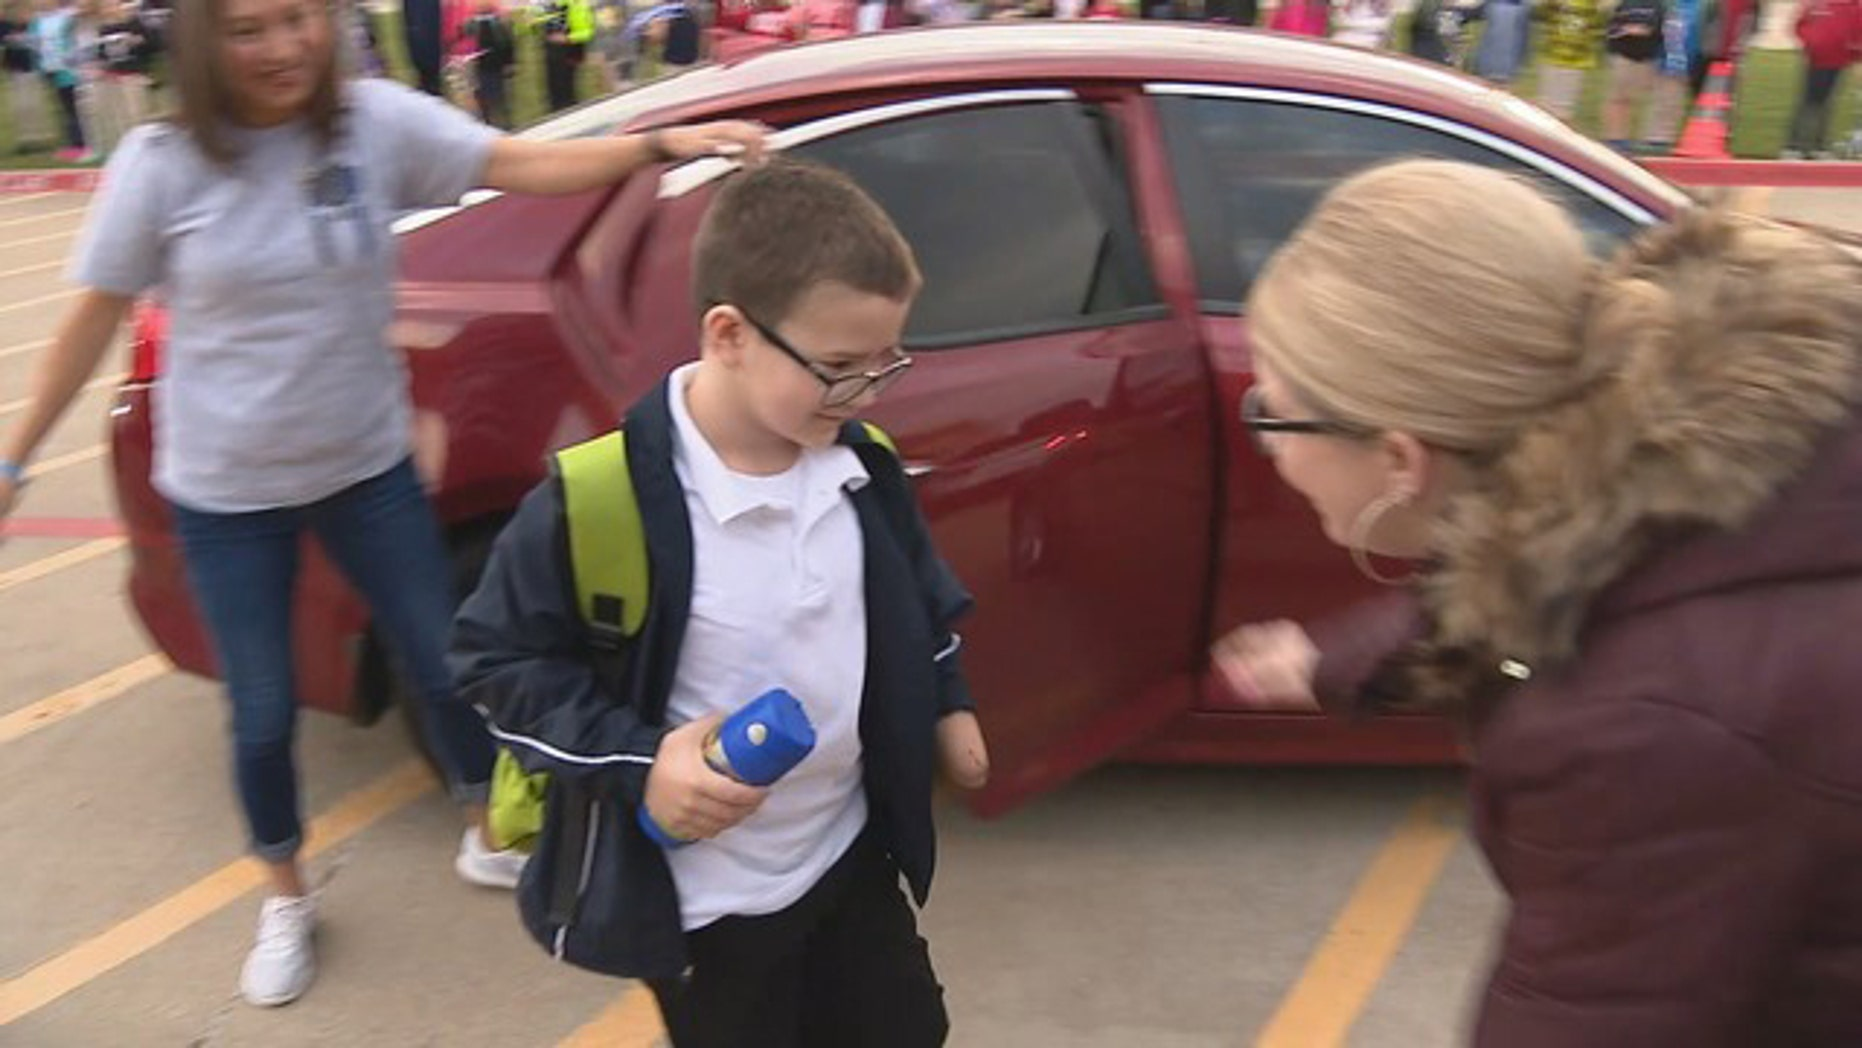 Brisen Fullbright went to school with police and fire escorts. (Fox 4)